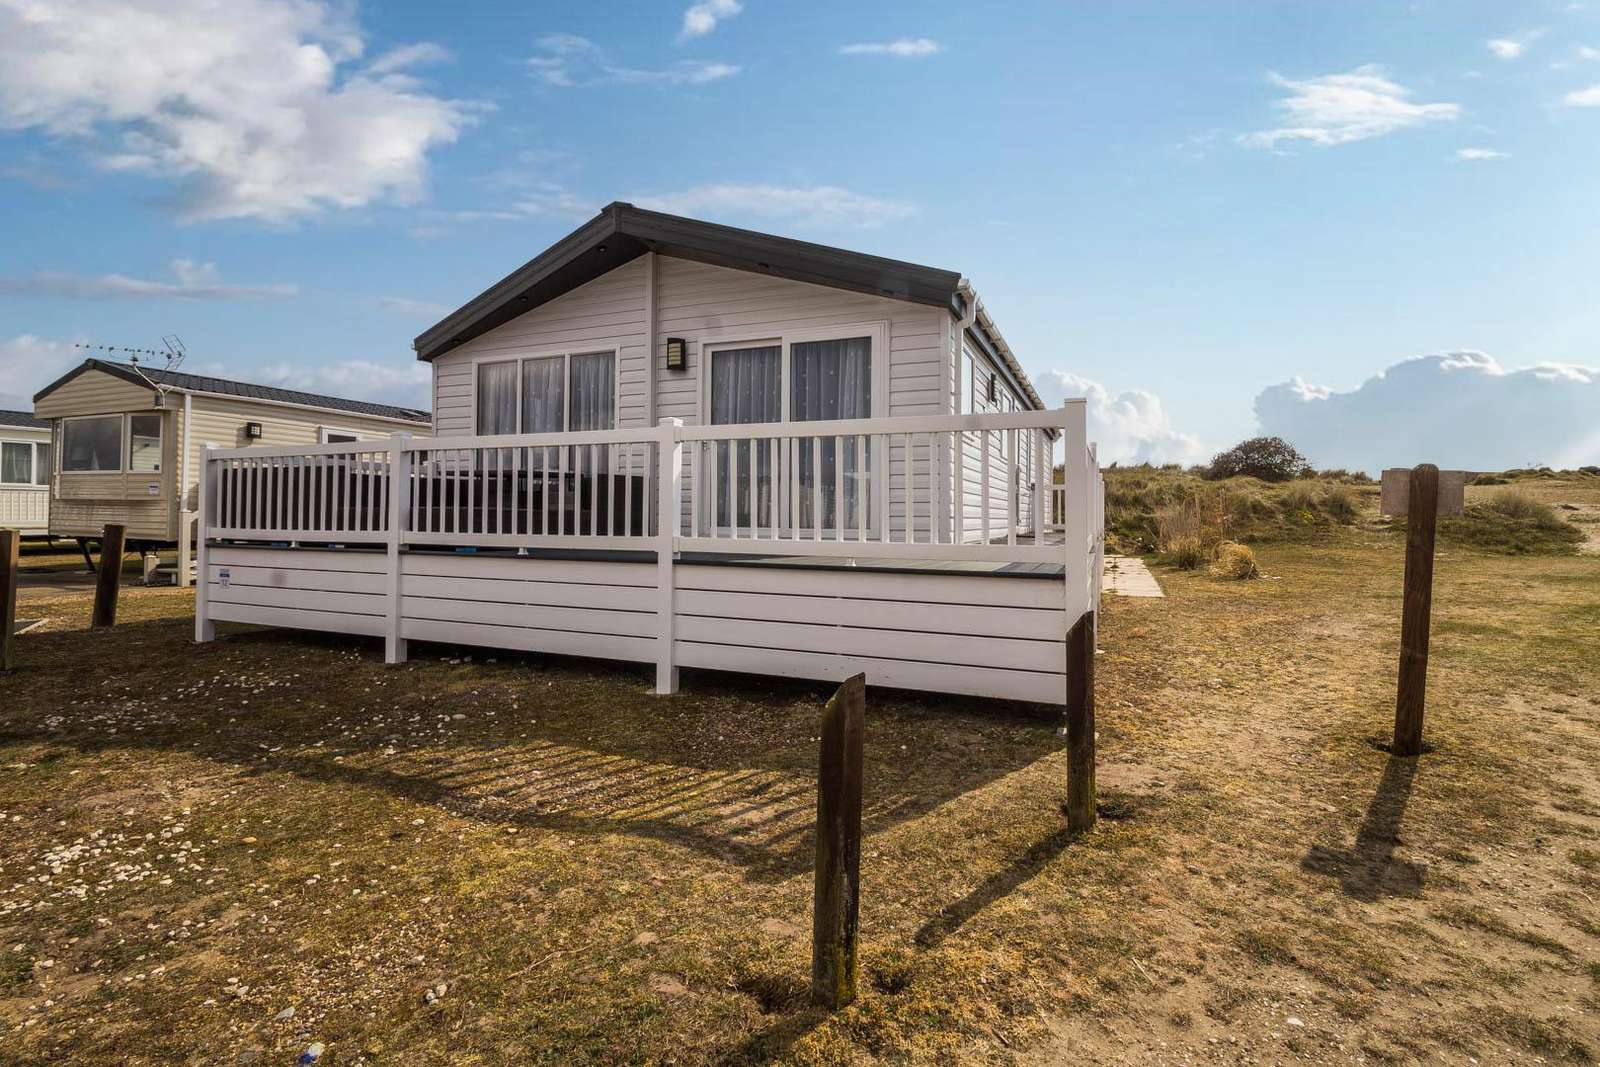 90012TD – The Dunes area, 3 bed, 8 berth lodge with decking. Platinum-Deluxe rated. - property